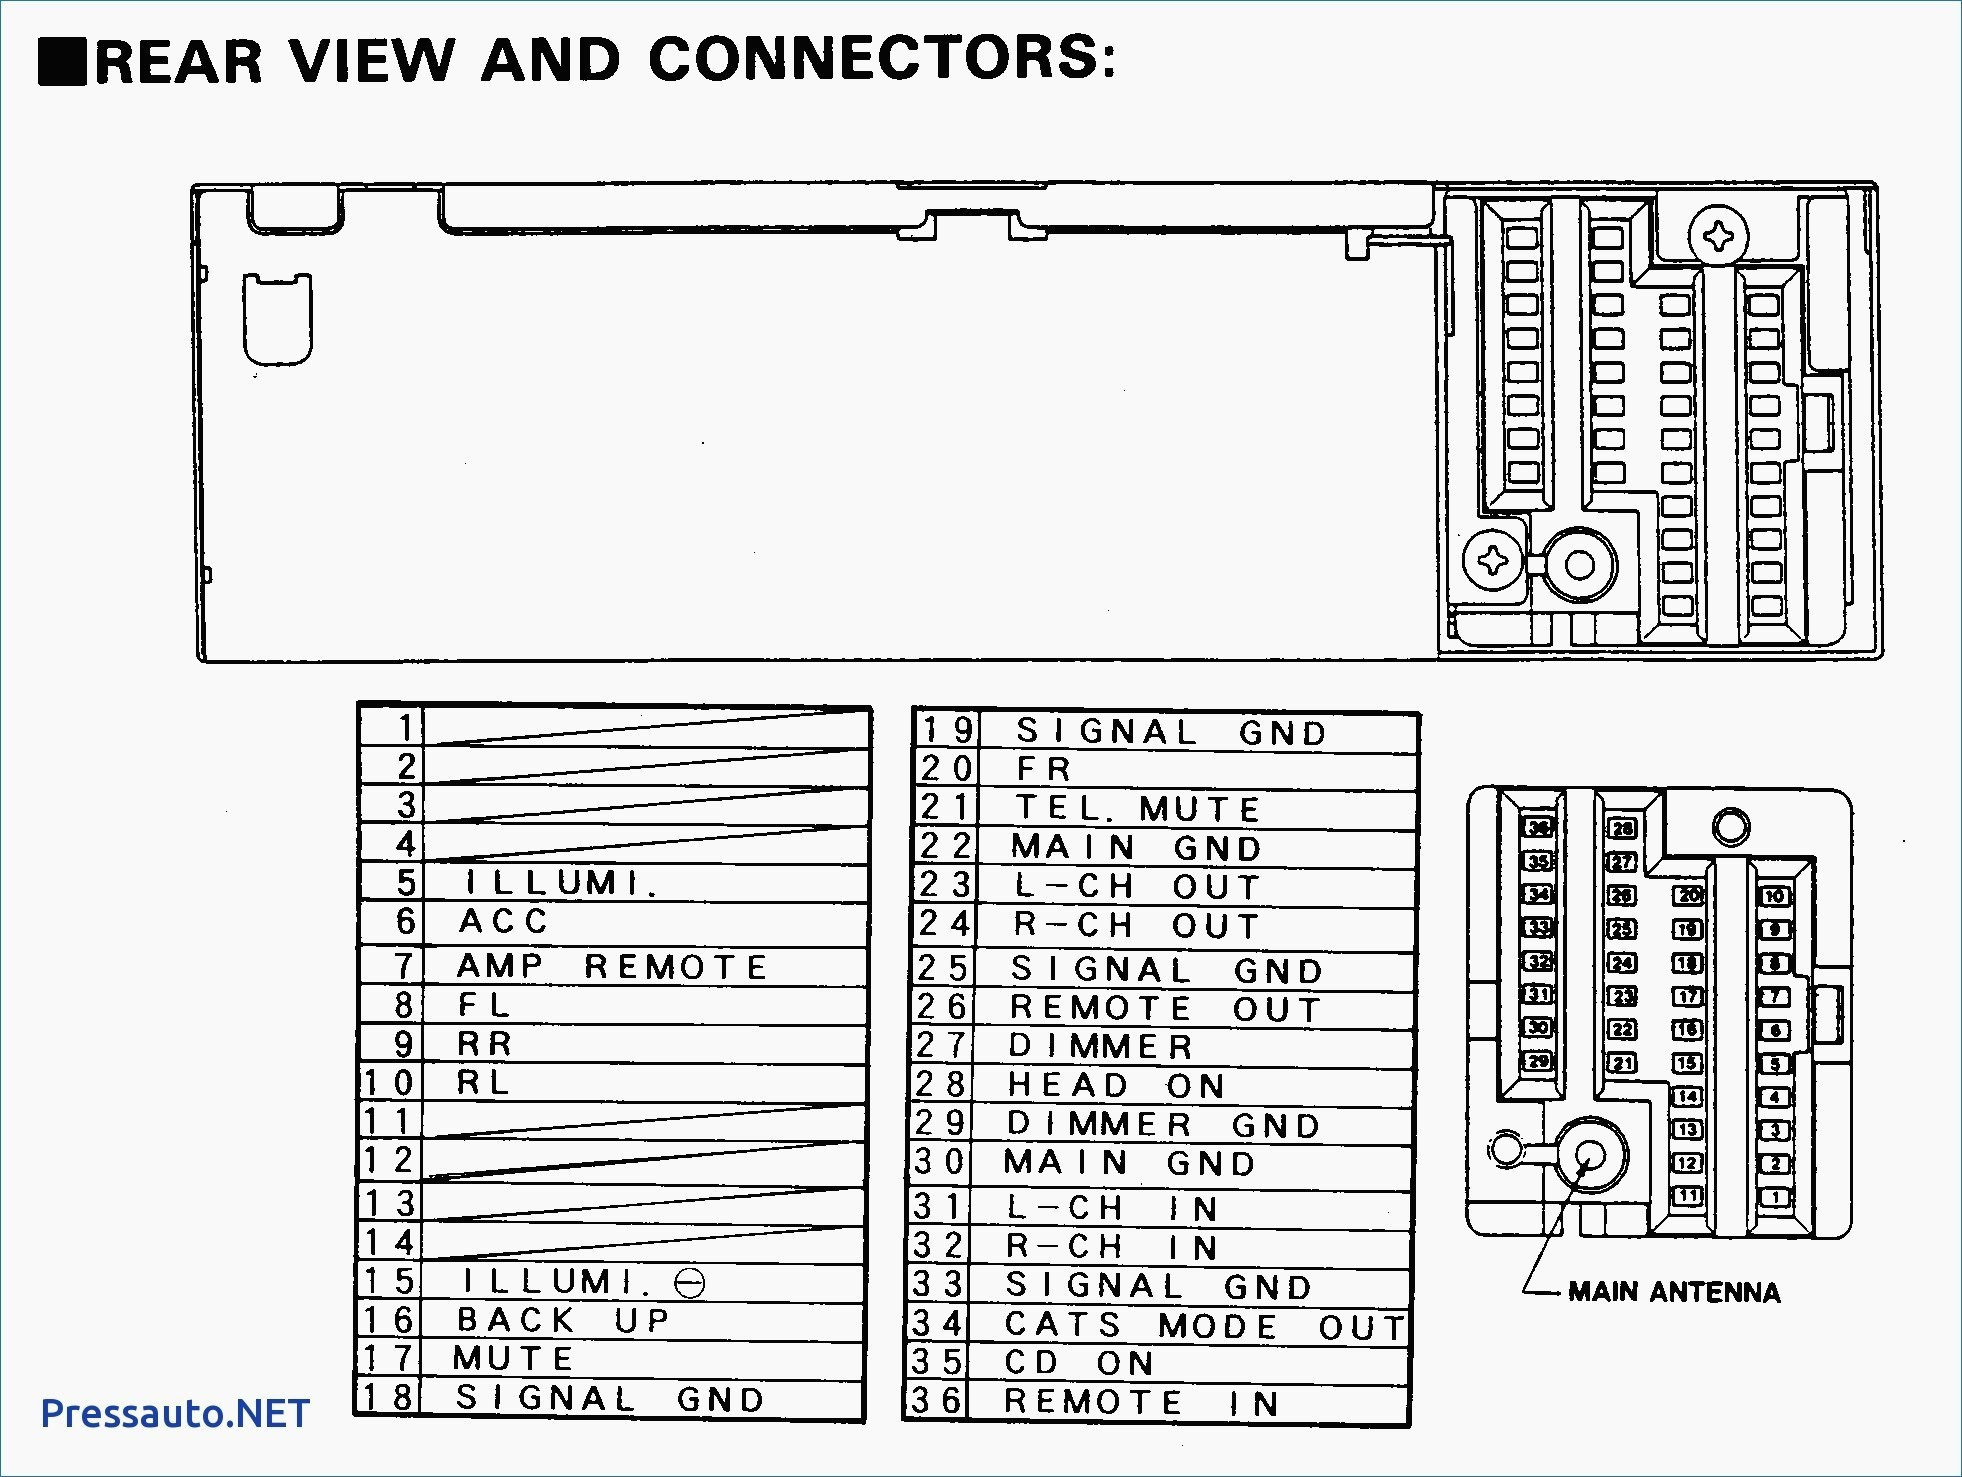 Wiring Diagram for Pioneer Car Stereo Wiring Diagram Booster Amplifier Inspirationa Pioneer Car Stereo Of Wiring Diagram for Pioneer Car Stereo Wiring Diagram Booster Amplifier Inspirationa Pioneer Car Stereo